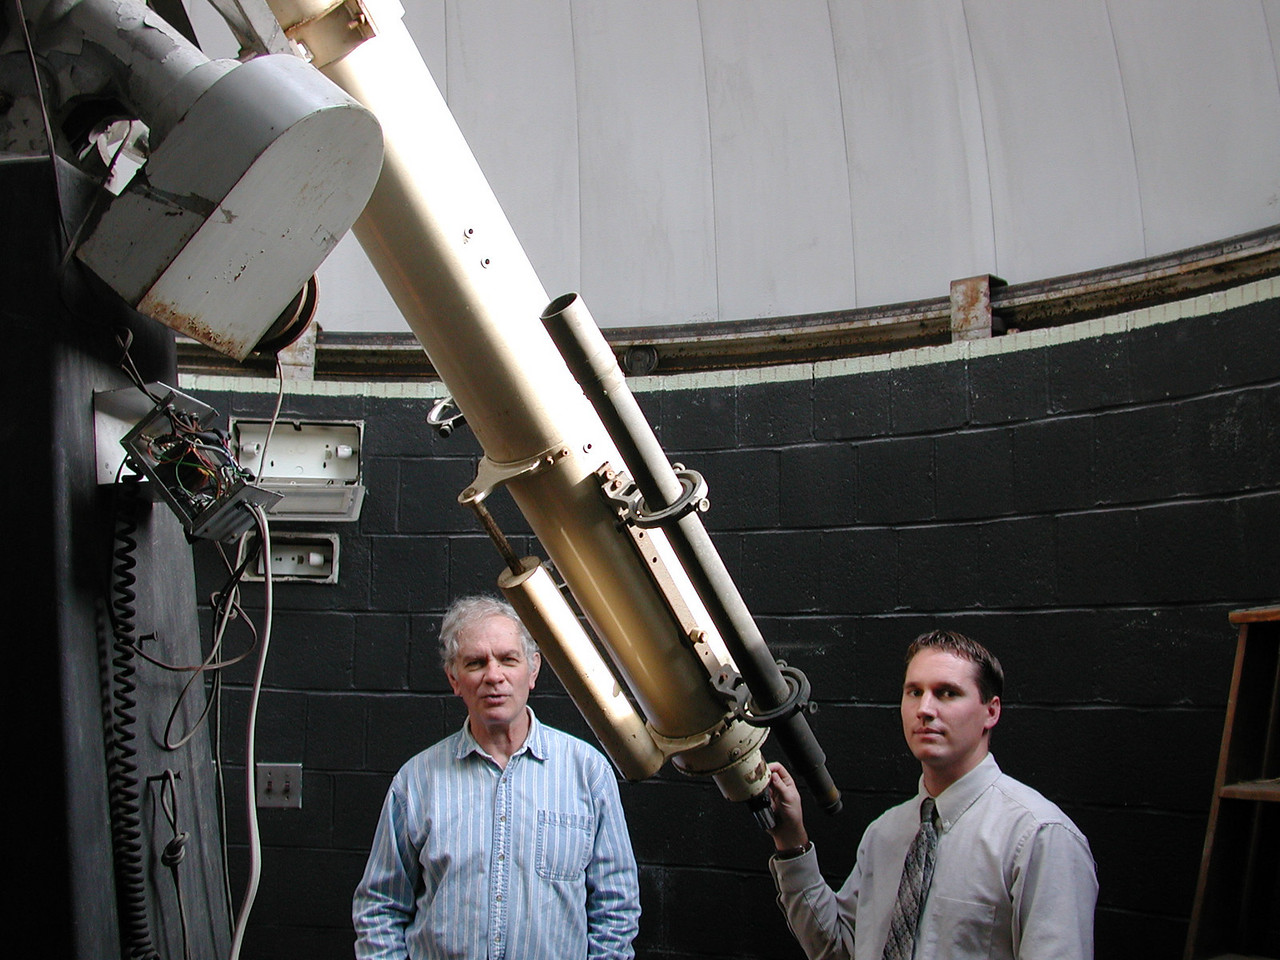 The telescope moves freely about both RA and Decl. axises and is quite comfortable to move by hand. The telescope tube also tapers from larger (at the main lens) to smaller at the observers end. This of course is the design used in older refractors and helps off set the balence of the scope at the tail end for finders and other accessories. (Dave Smith and Jayson Kowinsky pictured.)